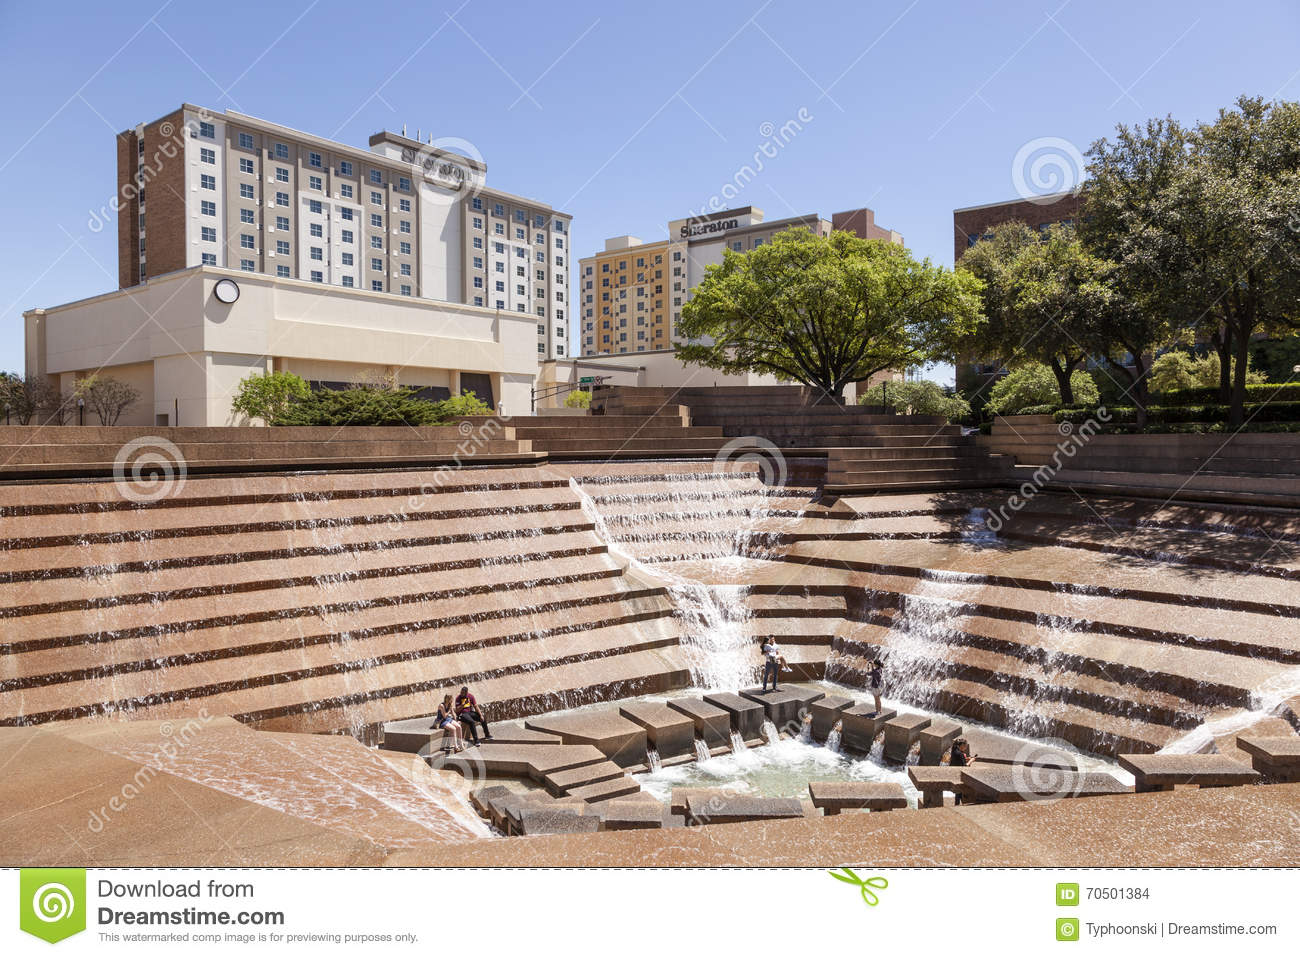 Water Gardens In Fort Worth, TX, USA